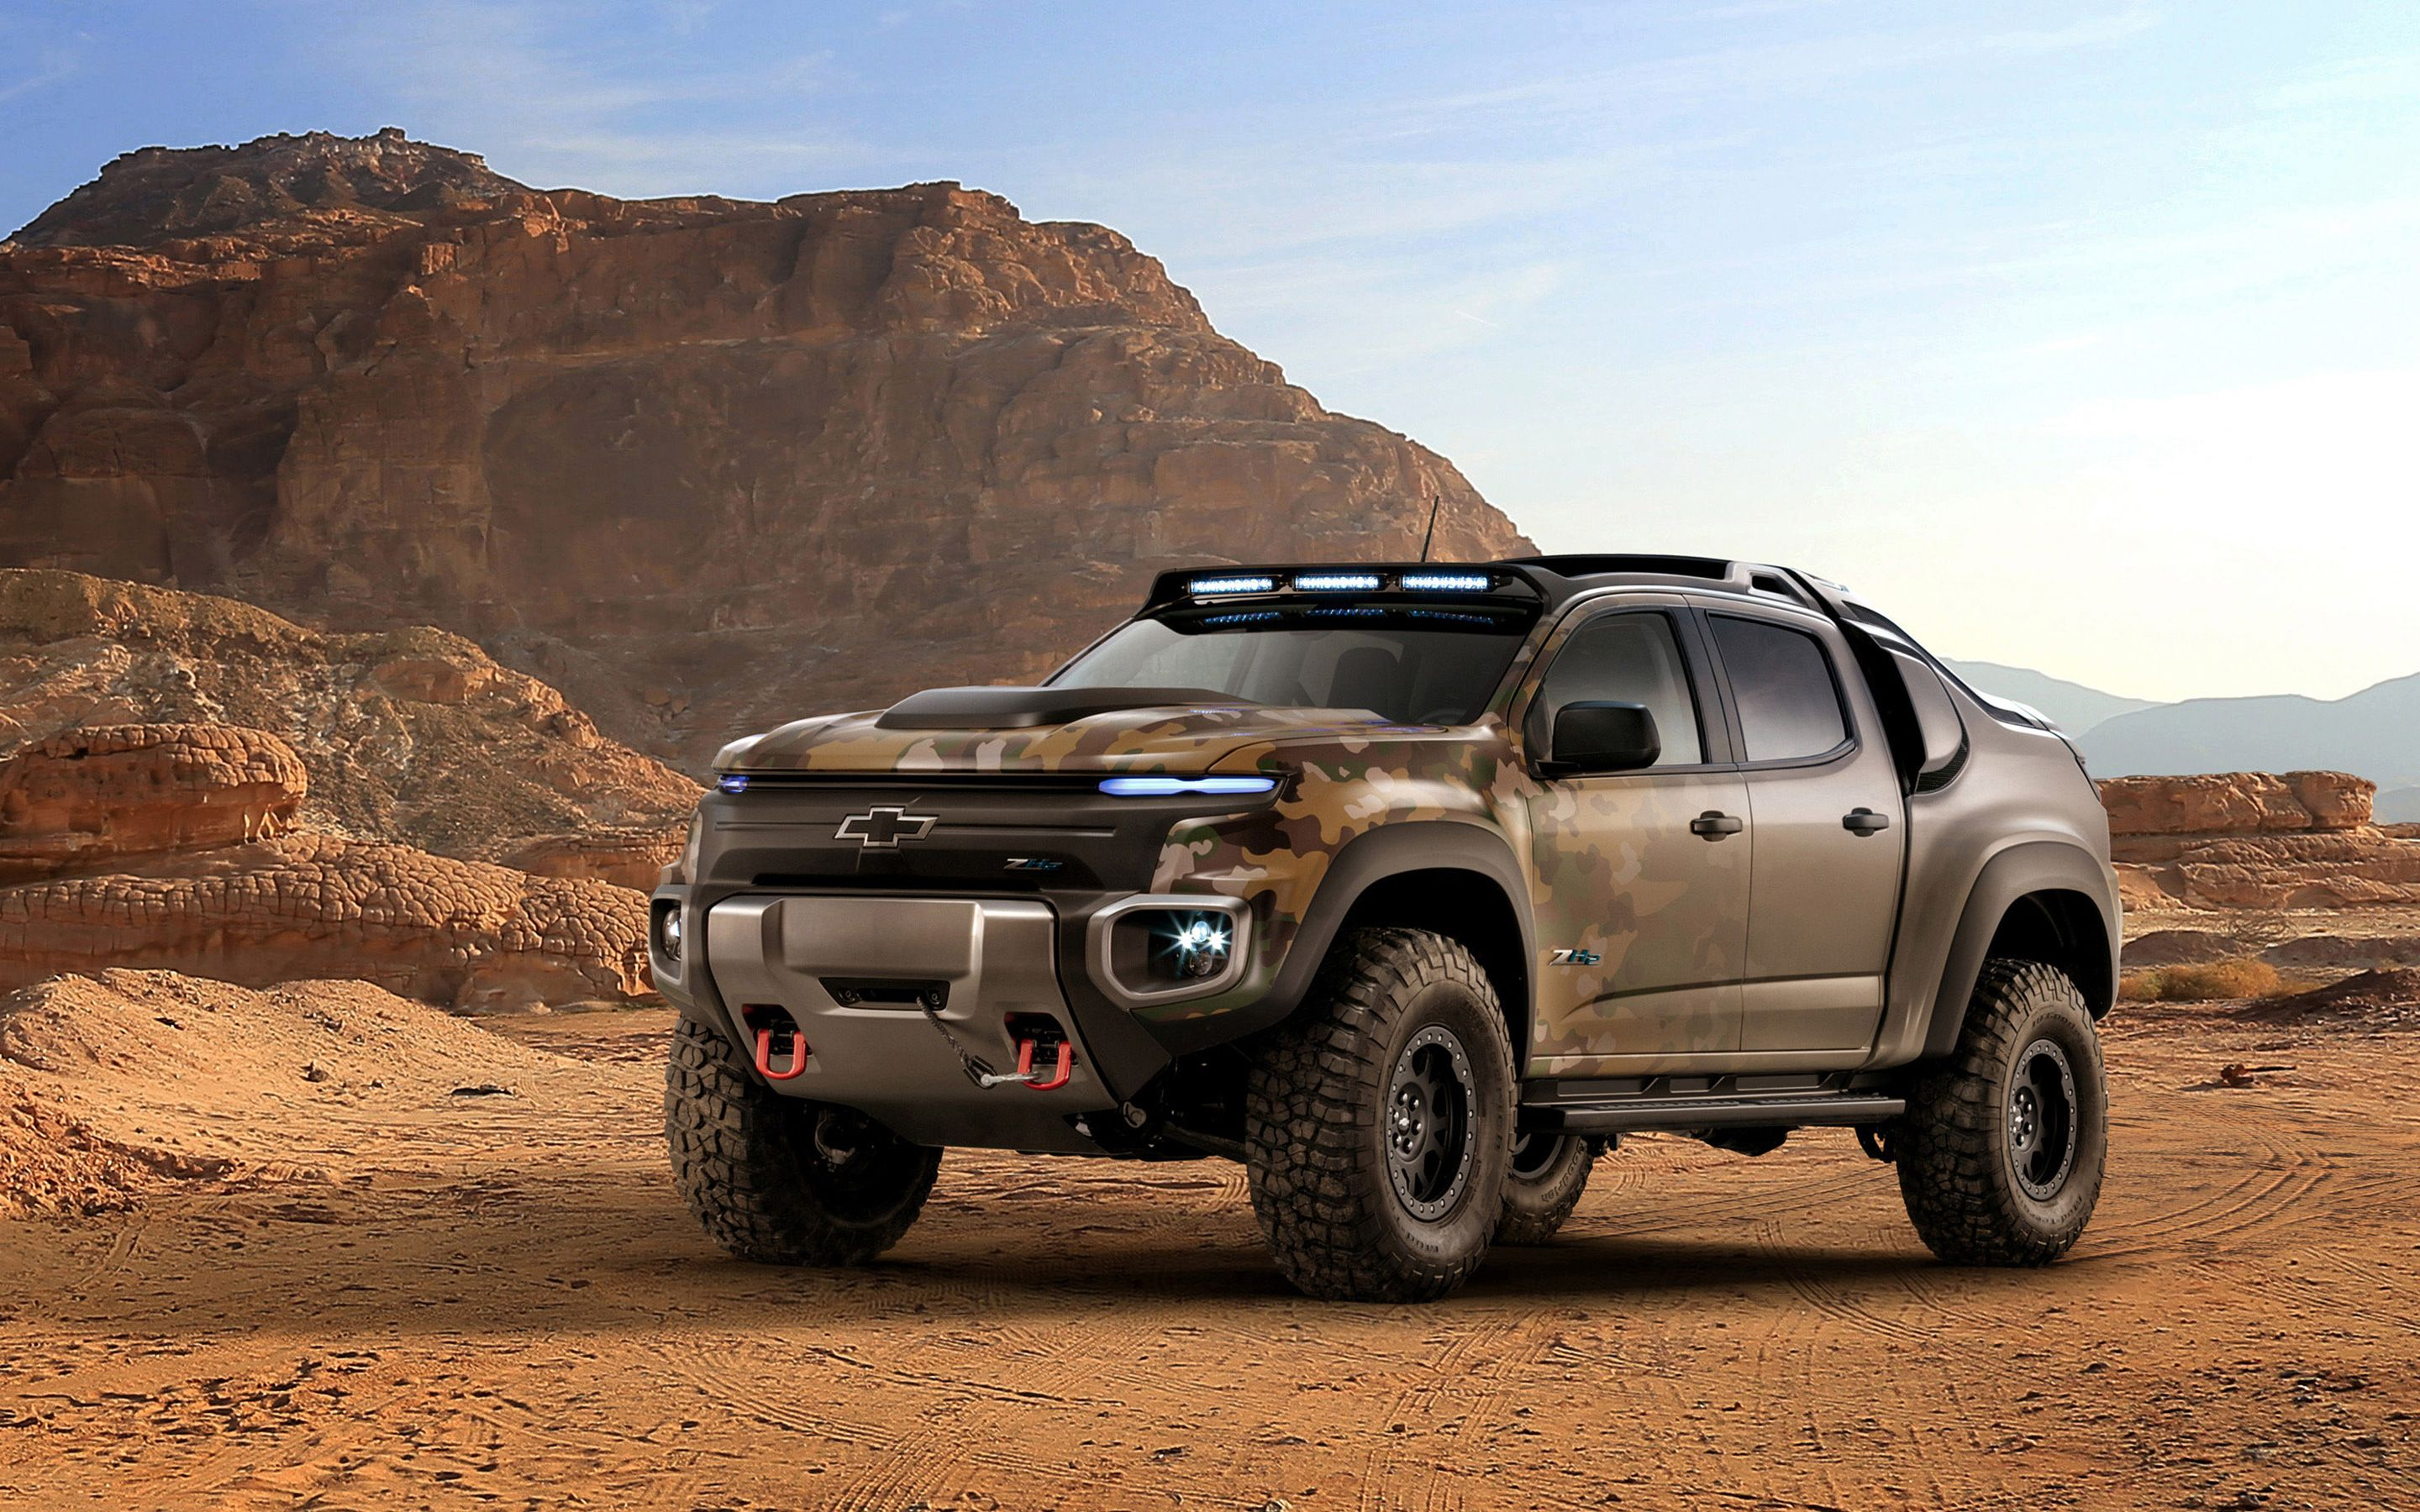 Chevrolet Colorado Zh Fuel Cell Army Truck Wallpaper With Images